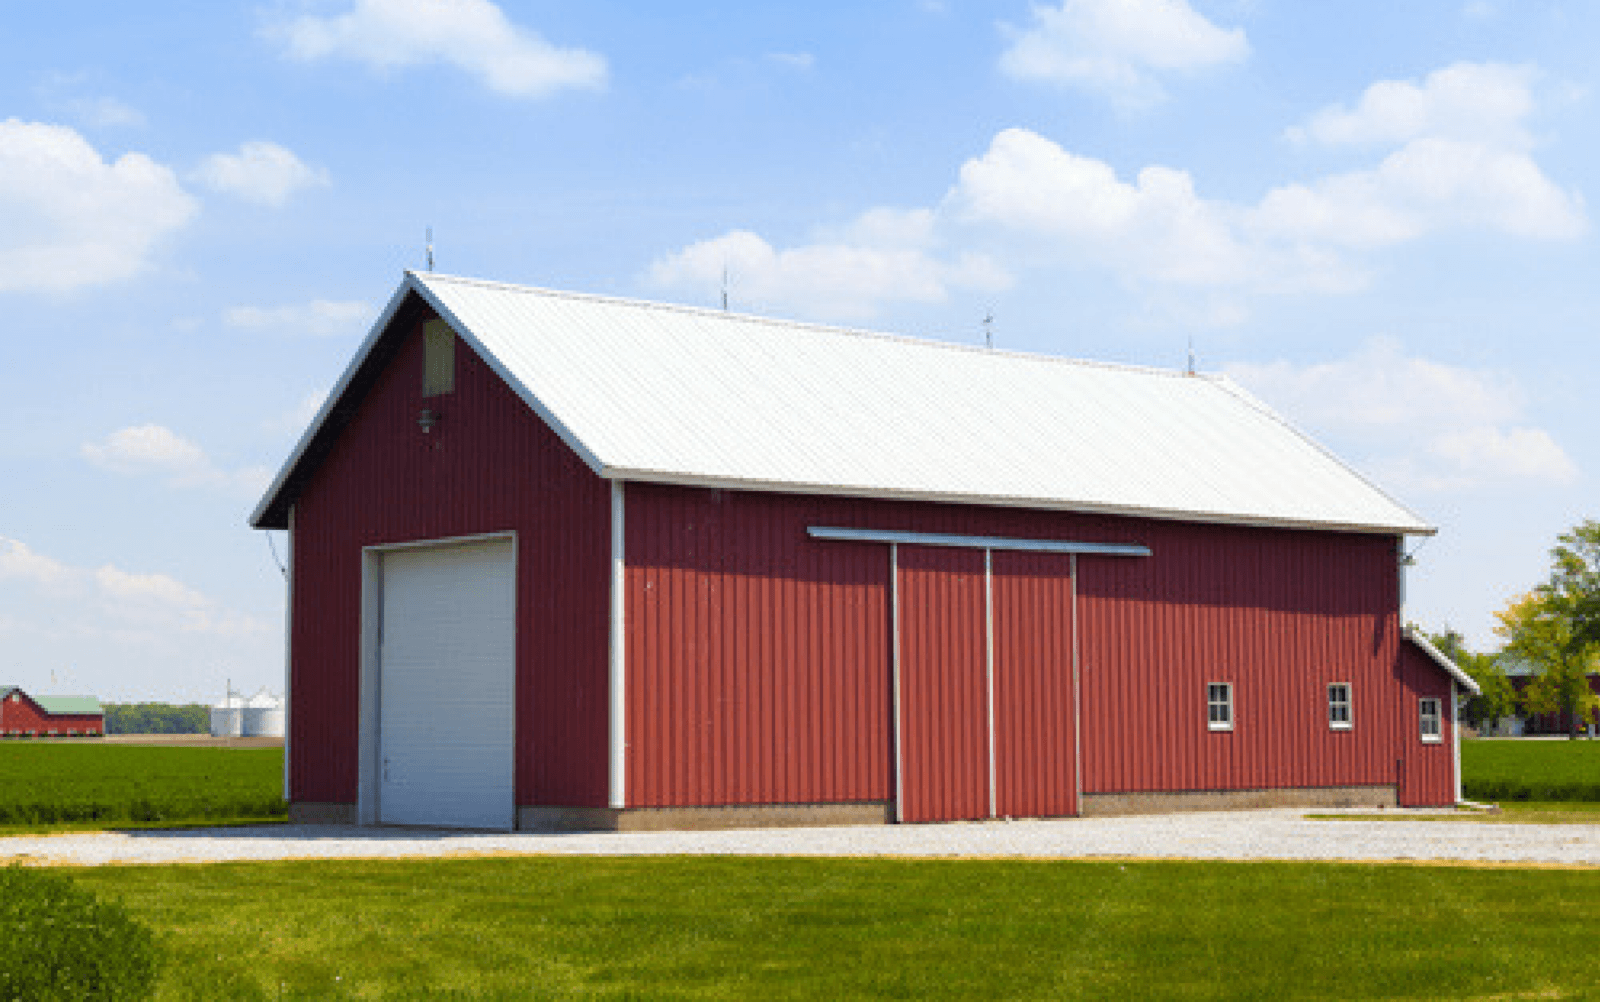 house pole full own best design of barn barns building size kits your plans interior garage build bedroom large small